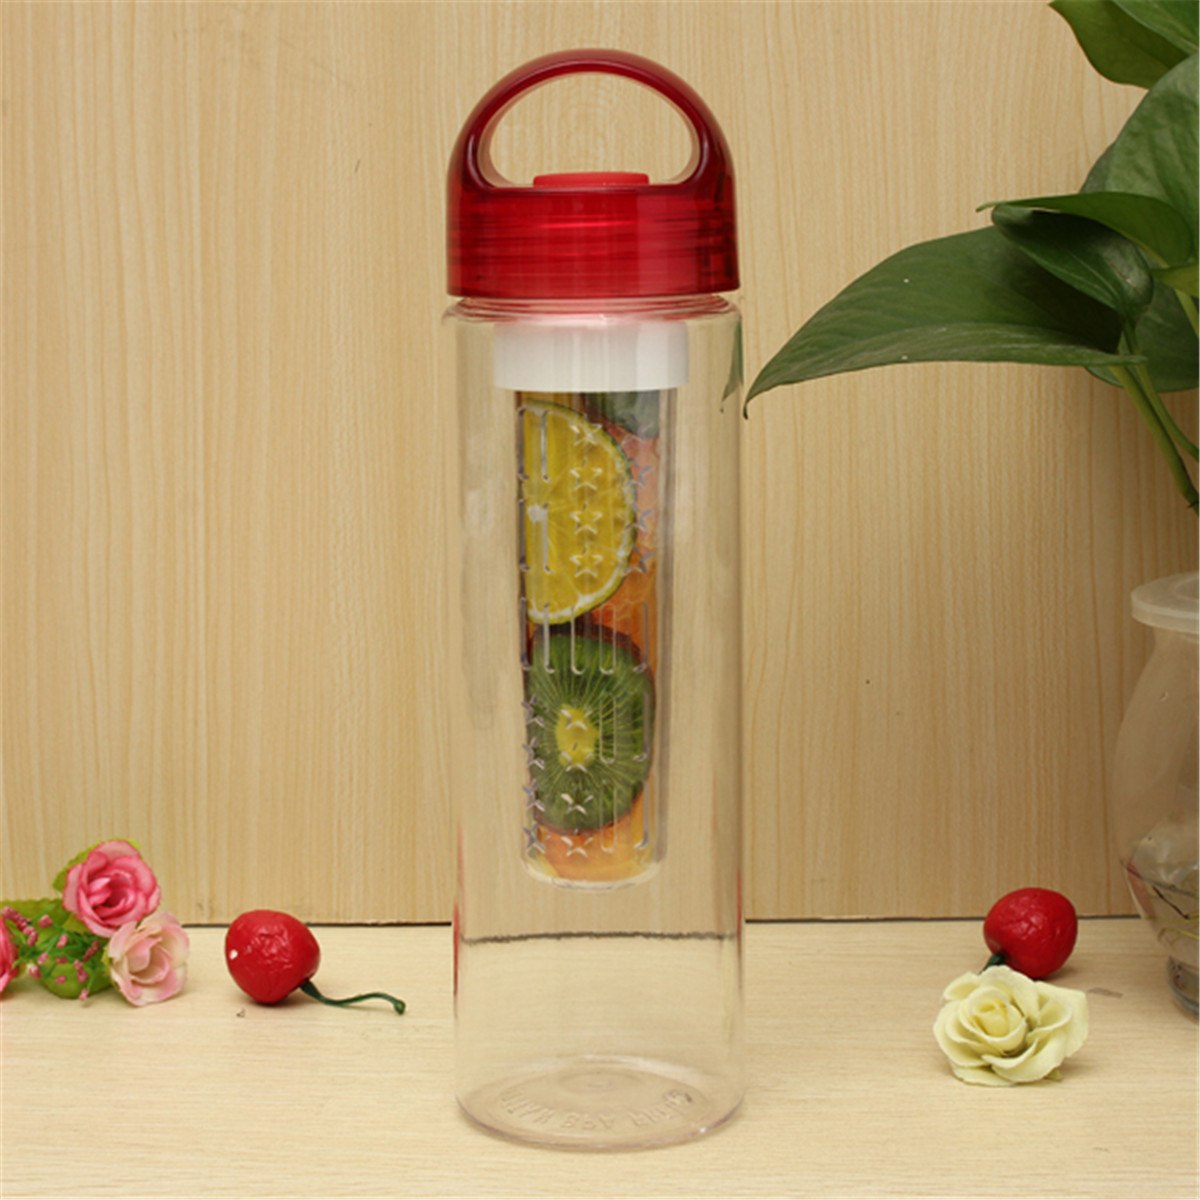 how to use detox water bottle